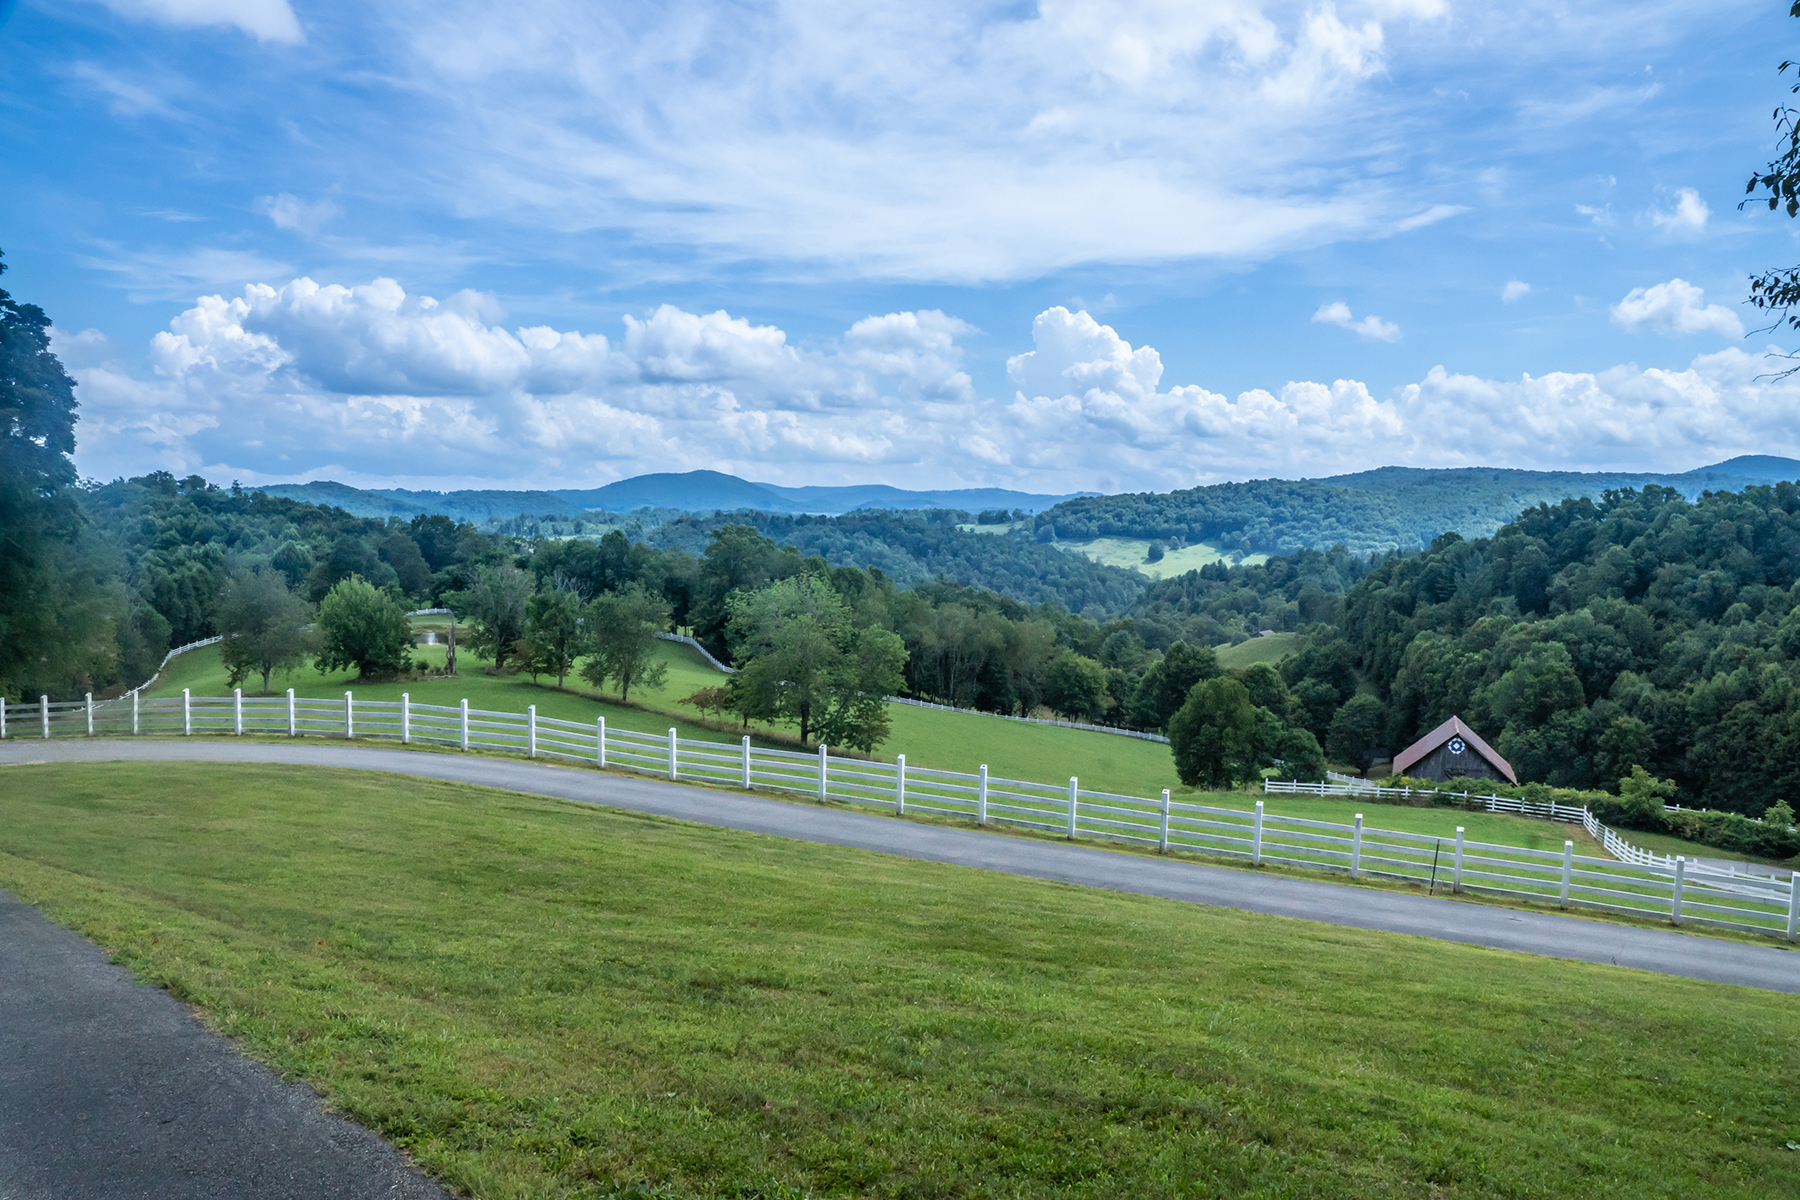 Single Family Homes for Active at BOONE 1201 Meat Camp Baptist Church Rd Boone, North Carolina 28607 United States